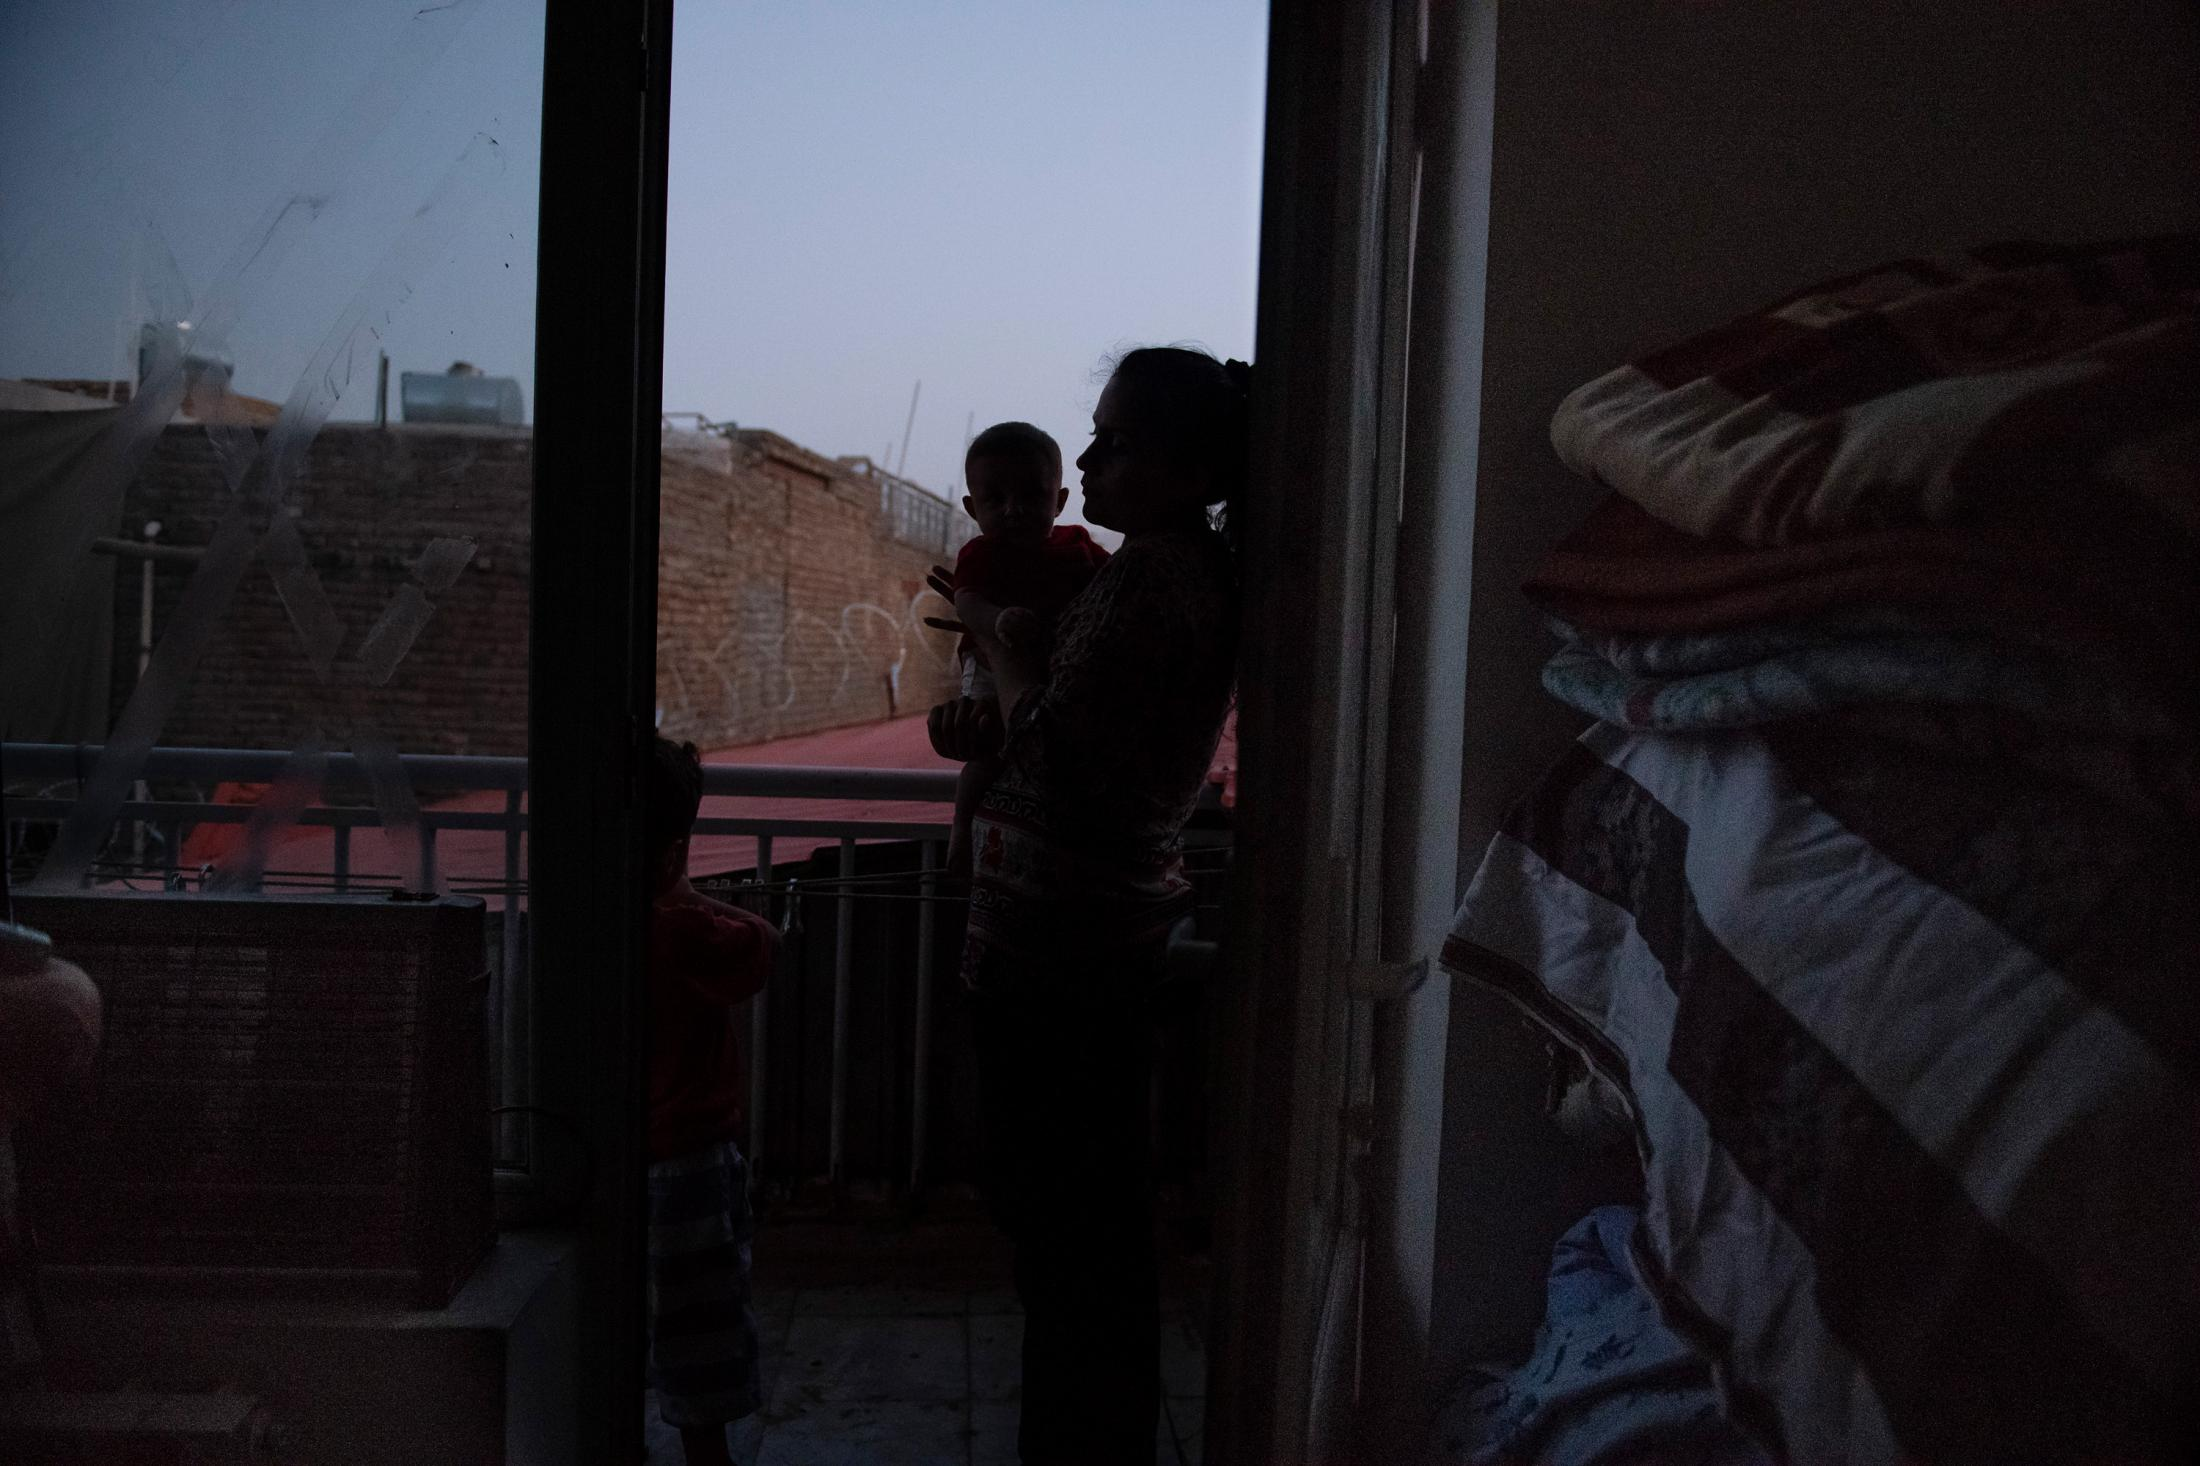 "KABUL | AFGHANISTAN | 8/10/18 | Mashal (26) takes her 3 year old son, Benyamin, to the balcony every time he asks after his father. Mashal points out to a star: ""Your father is resting there"". Everyday, ever since the death of her husband, Sabawoon (27), Benyamin starts acting out around the time his father would arrive home in the afternoon and it is a daily struggle for Mashal, who was 8 months pregnant at the time of his death, to keep her son calm and occupied. Sabawoon, a journalist for Azadi Radio, was killed in a double suicide blast in the Afghan capital on April 30, 2018. It was the deadliest single attack involving journalists in Afghanistan since at least 2002 which took the lives of 9 journalists. Kiana Hayeri for the New York Times"